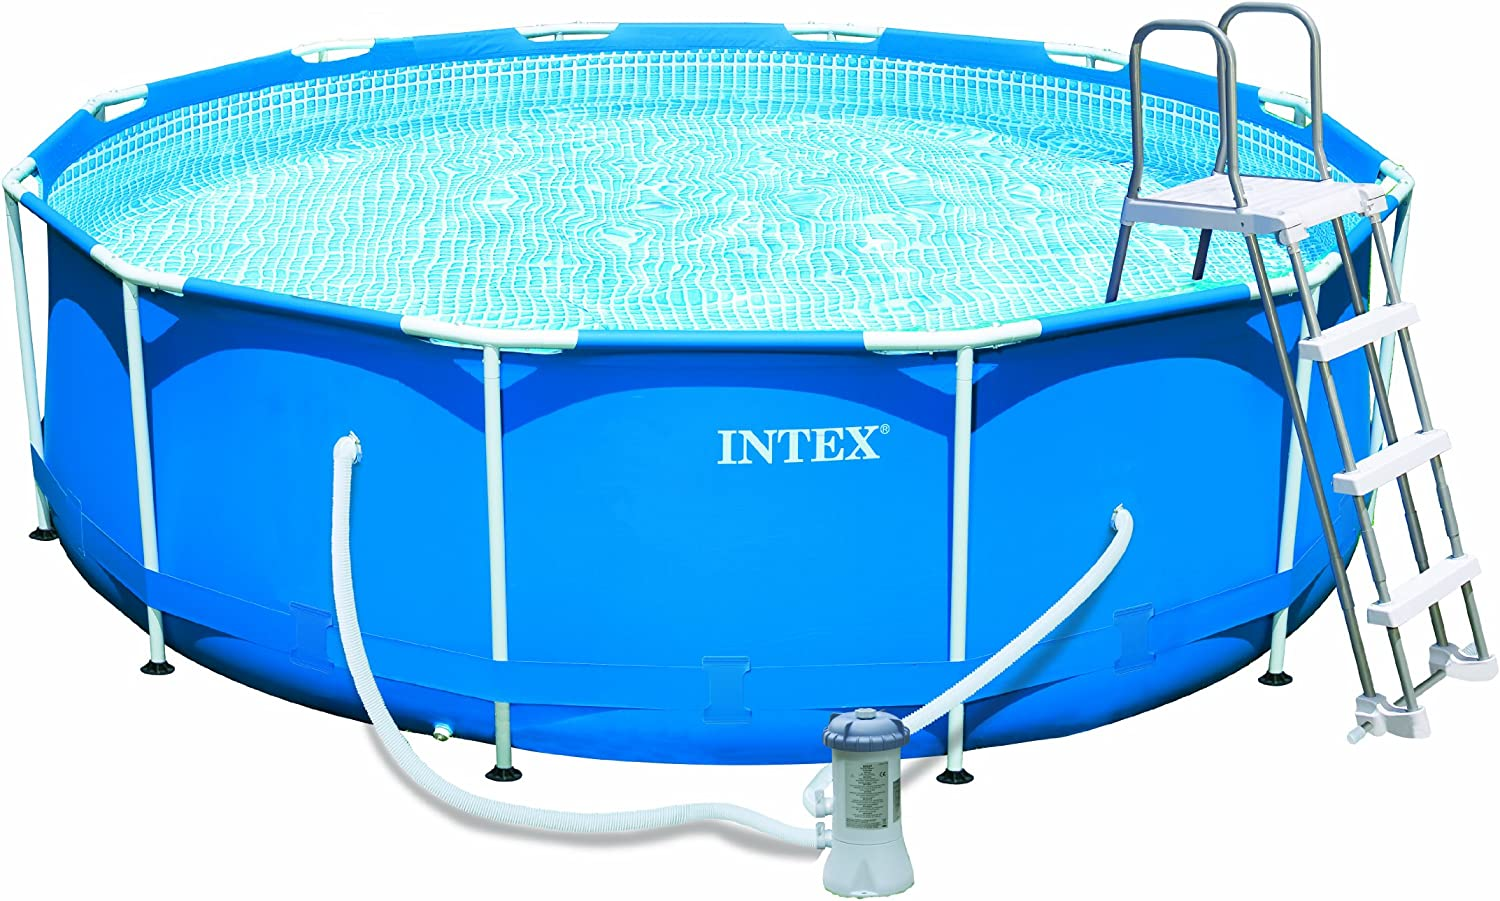 Intex – 54424 FR – Piscina – Kit Piscina Metal Frame 3, 66 x 0, 91 m – Tubular Metal Redonda – Depurador de Cartucho 2 M3/H: Amazon.es: Jardín